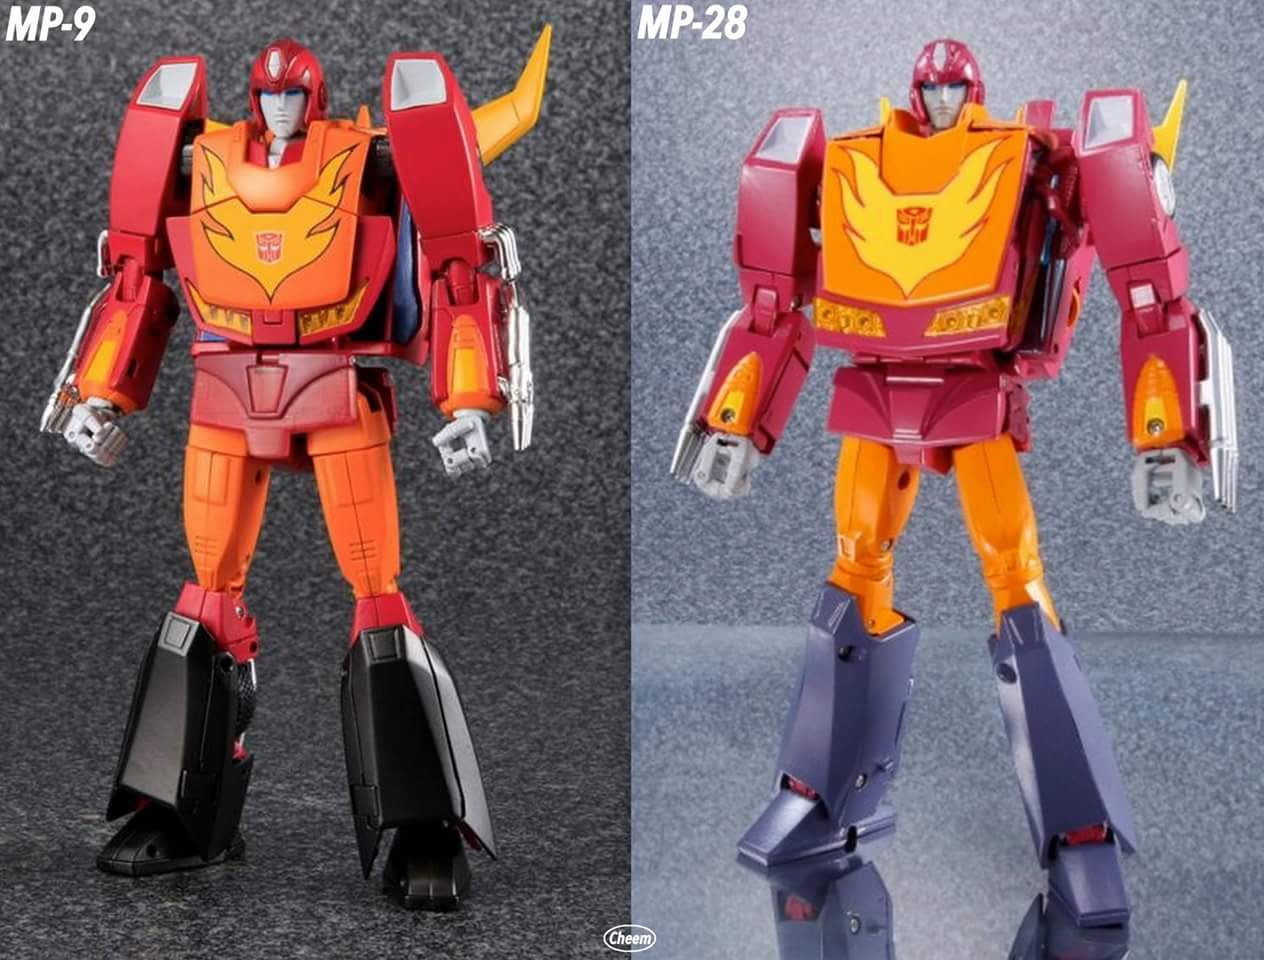 [Masterpiece] MP-28 Hot Rod/Météorite QQgxL9K1